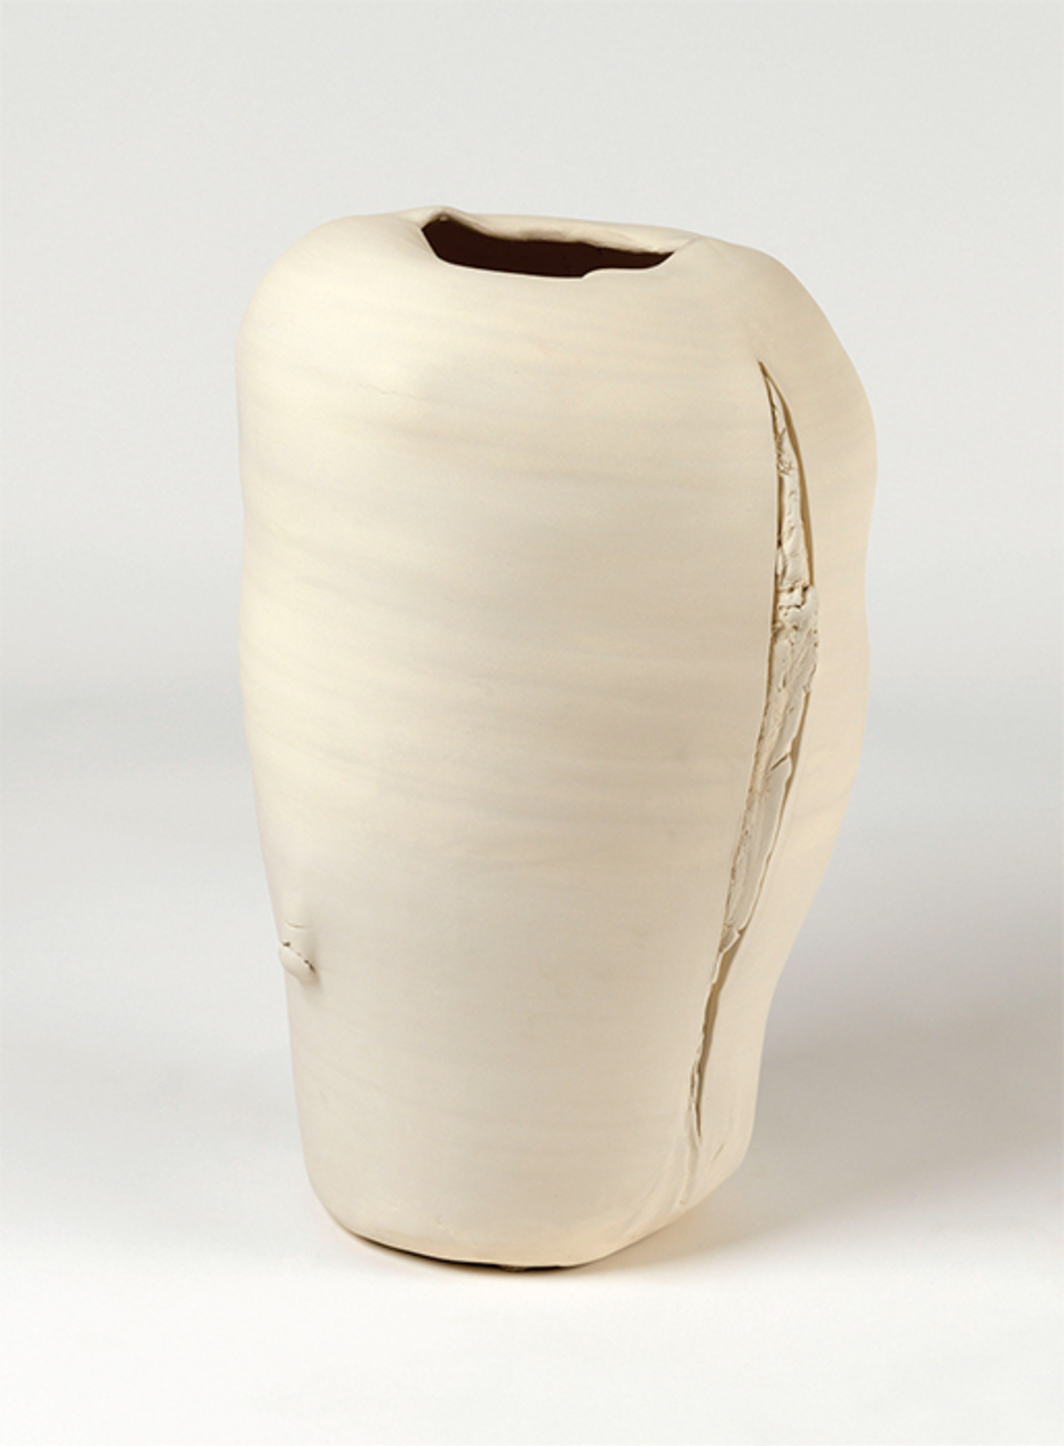 "Nathalie Khayat, Untitled, 2015, unglazed porcelain, 22 7/8 × 13 3/8 × 13 3/8""."